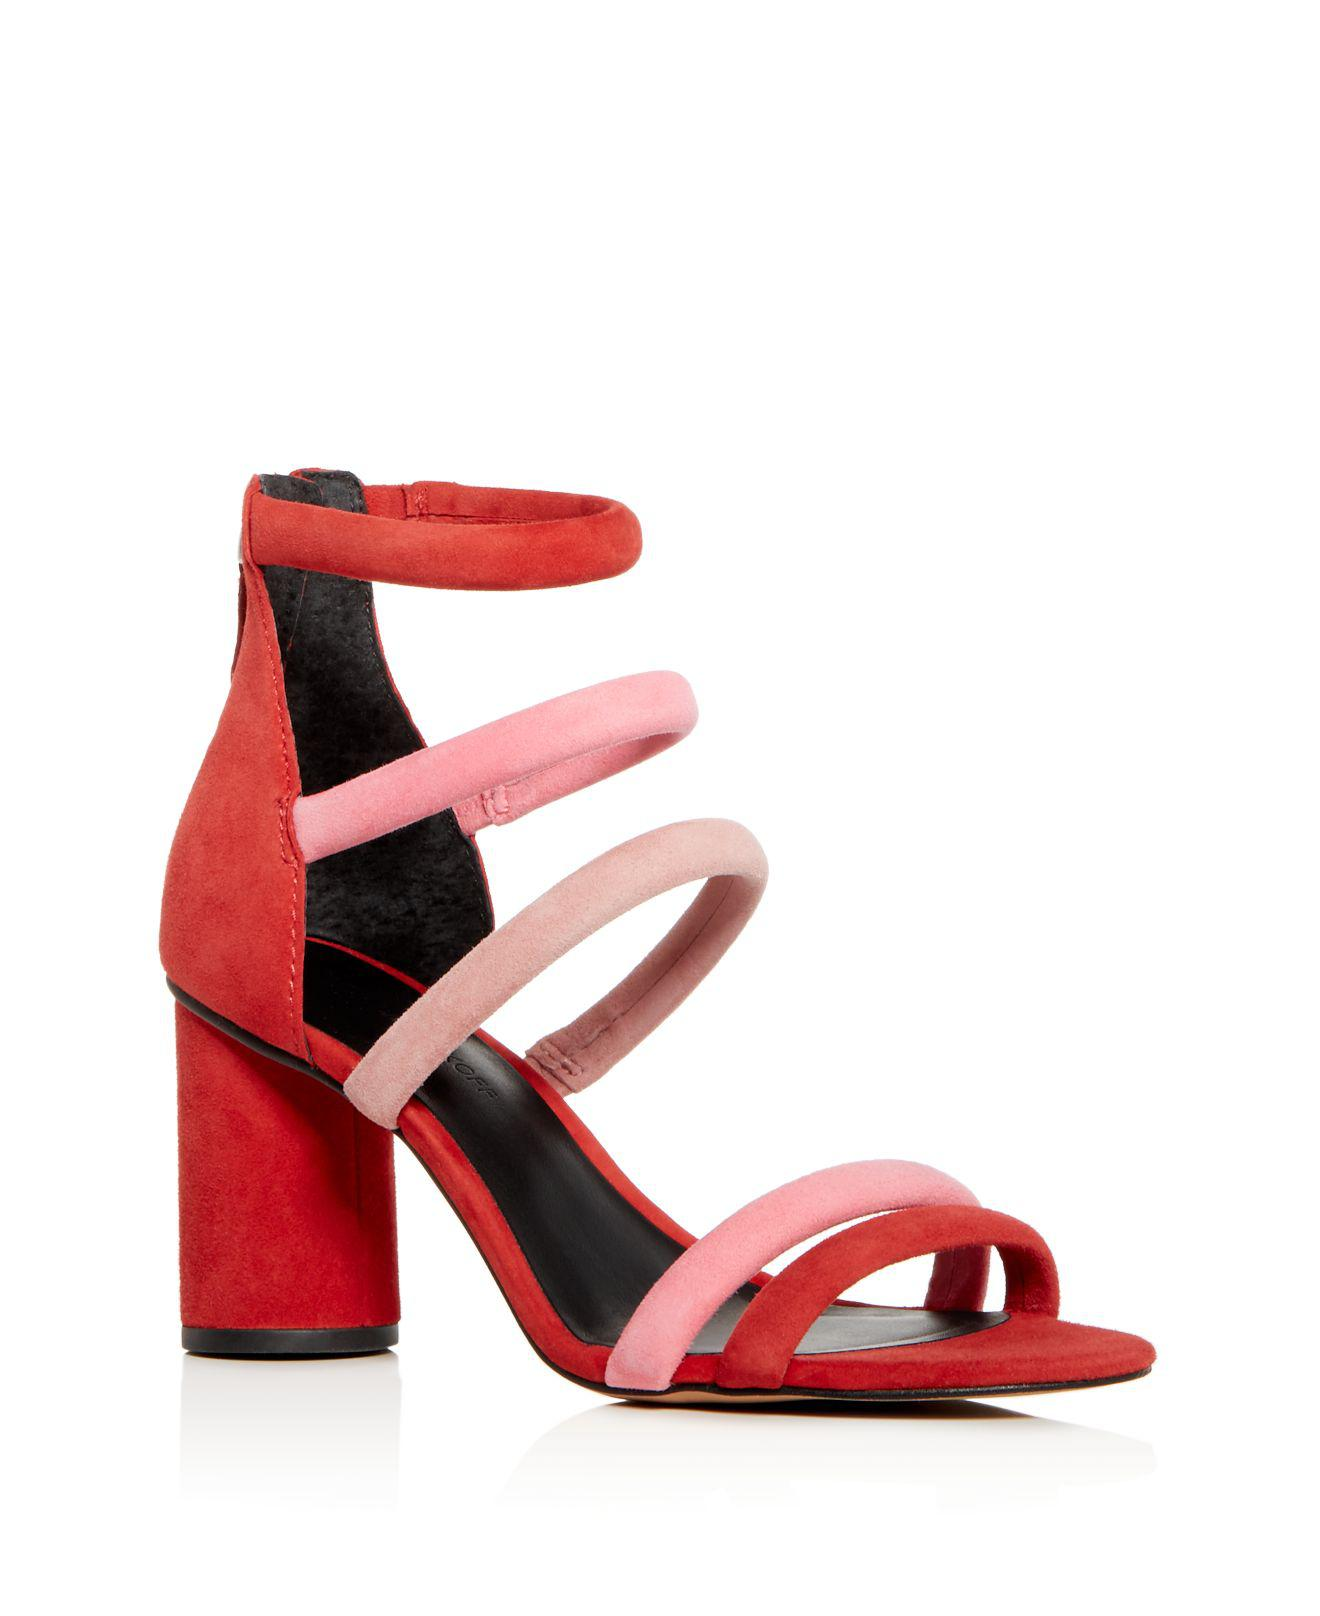 Prices Sale Online Rebecca Minkoff Heeled Sandals Shoes Women Discount 2018 New Online Cheapest  Discount Newest Shop For tZE5nV